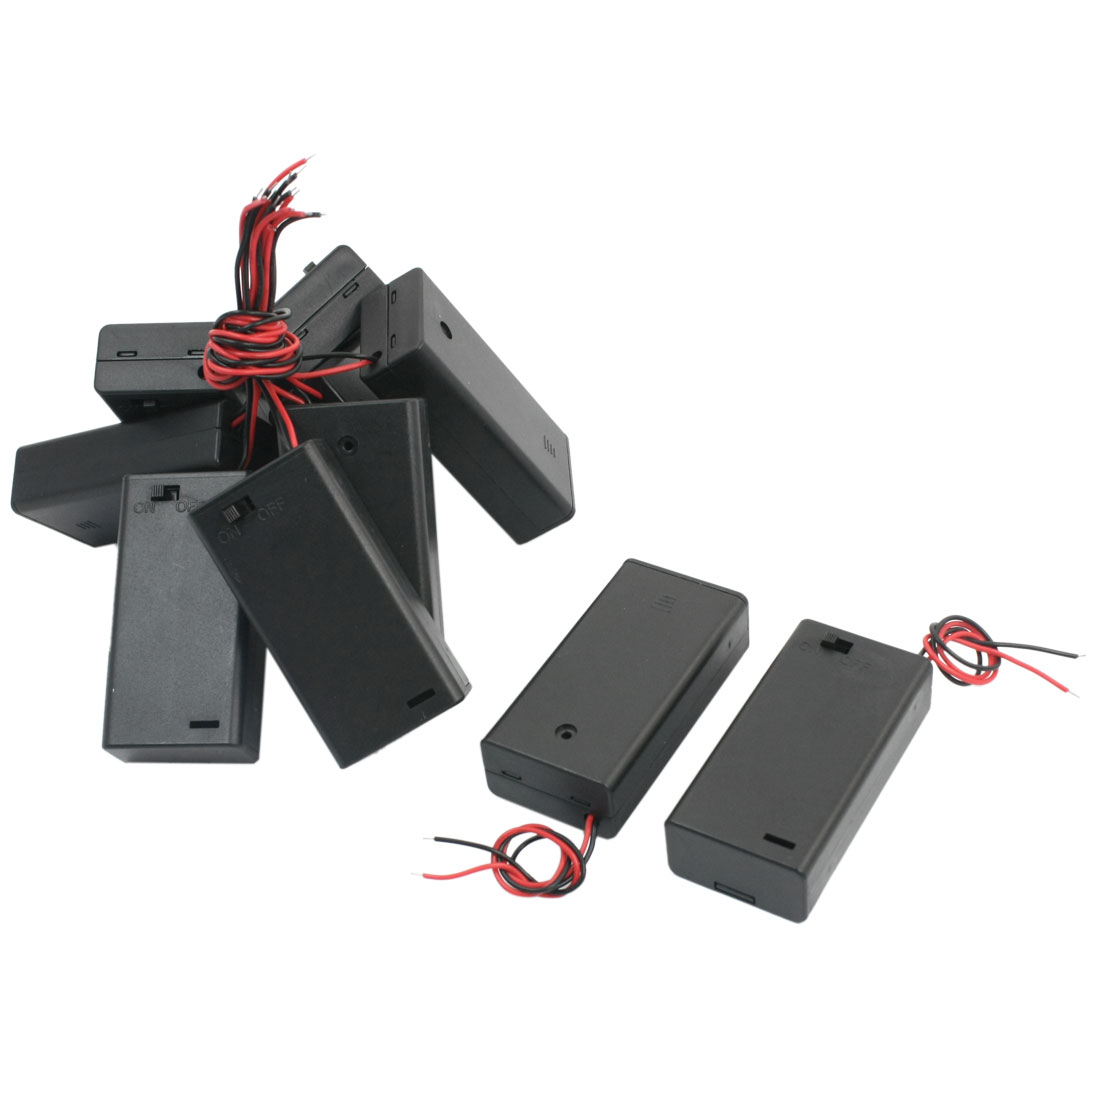 10 Pcs Two Wired Leads Slide Cover Black Plastic 2 x 1.5V AA Battery Holder Case Container Box w ON/OFF Switch